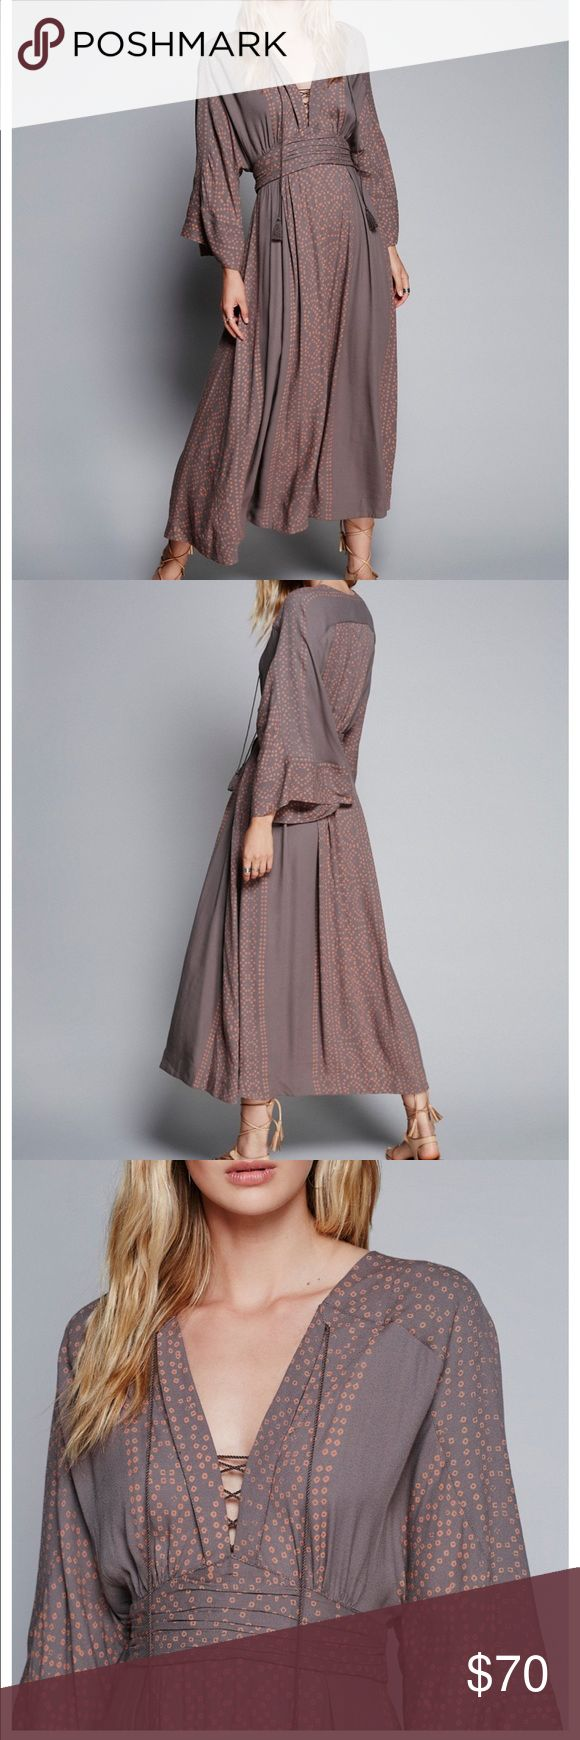 Free people modern kimono dress gray 0 Brand new with tag Free People Dresses Midi